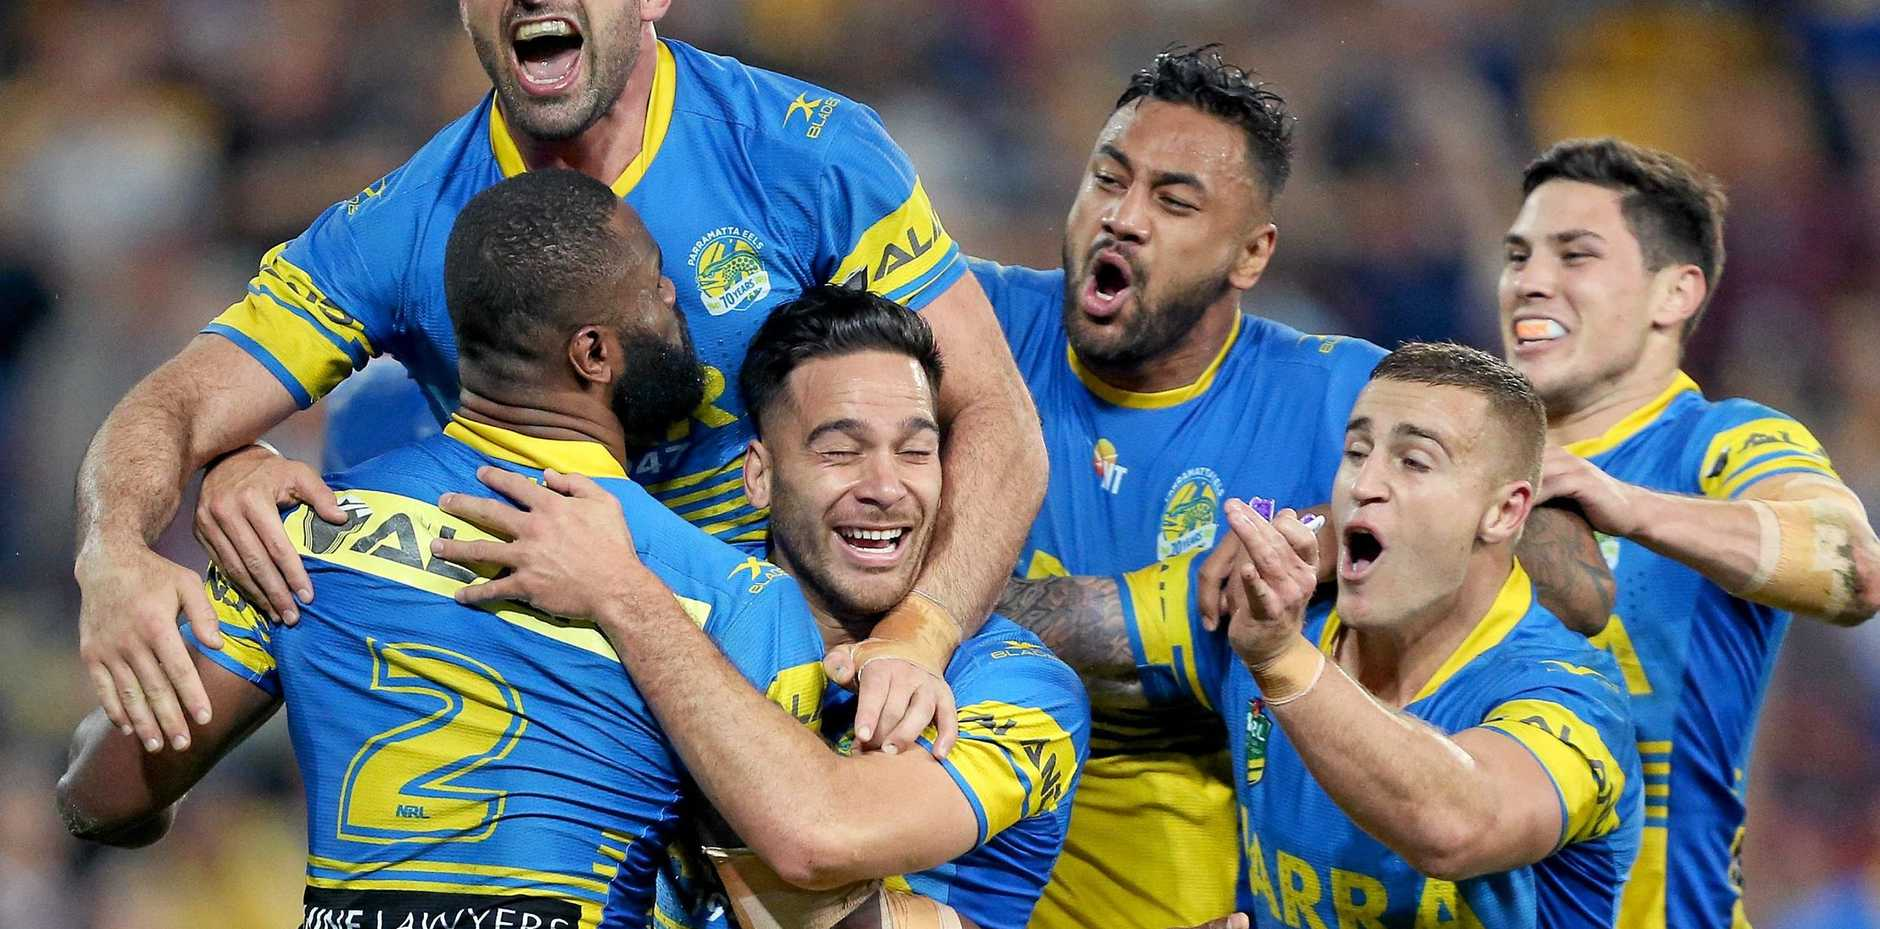 Corey Norman of Parramatta (centre) celebrates with teammates after scoring a try.